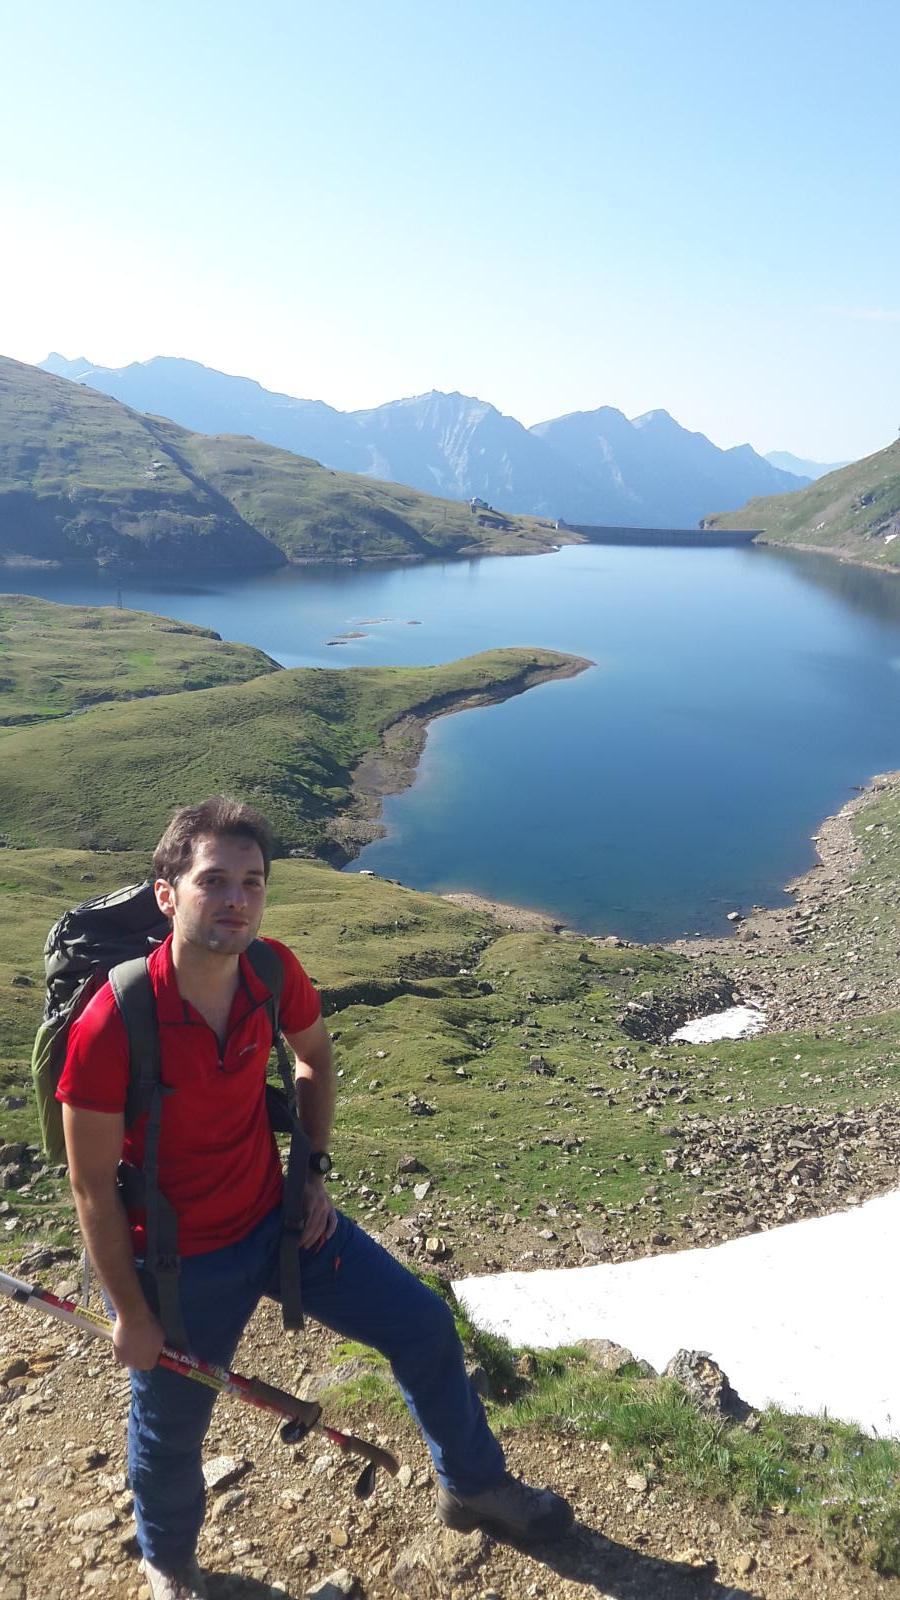 mynd af From Devero to Vannino: A 2-day trek